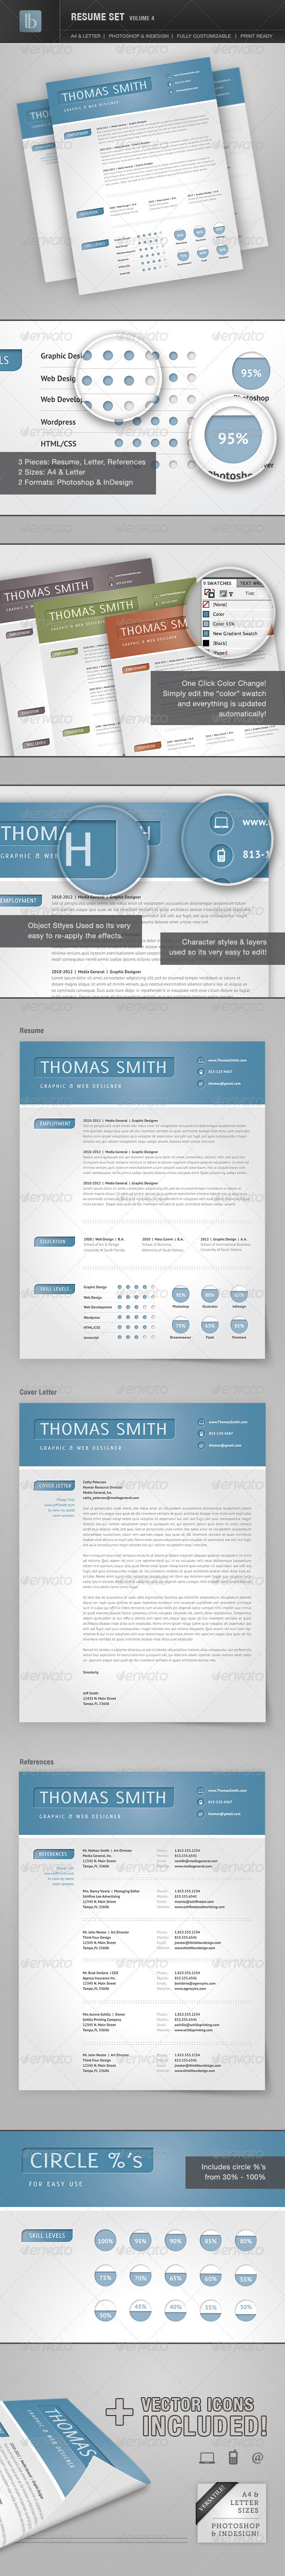 Resume Set | Volume 4 - Resumes Stationery